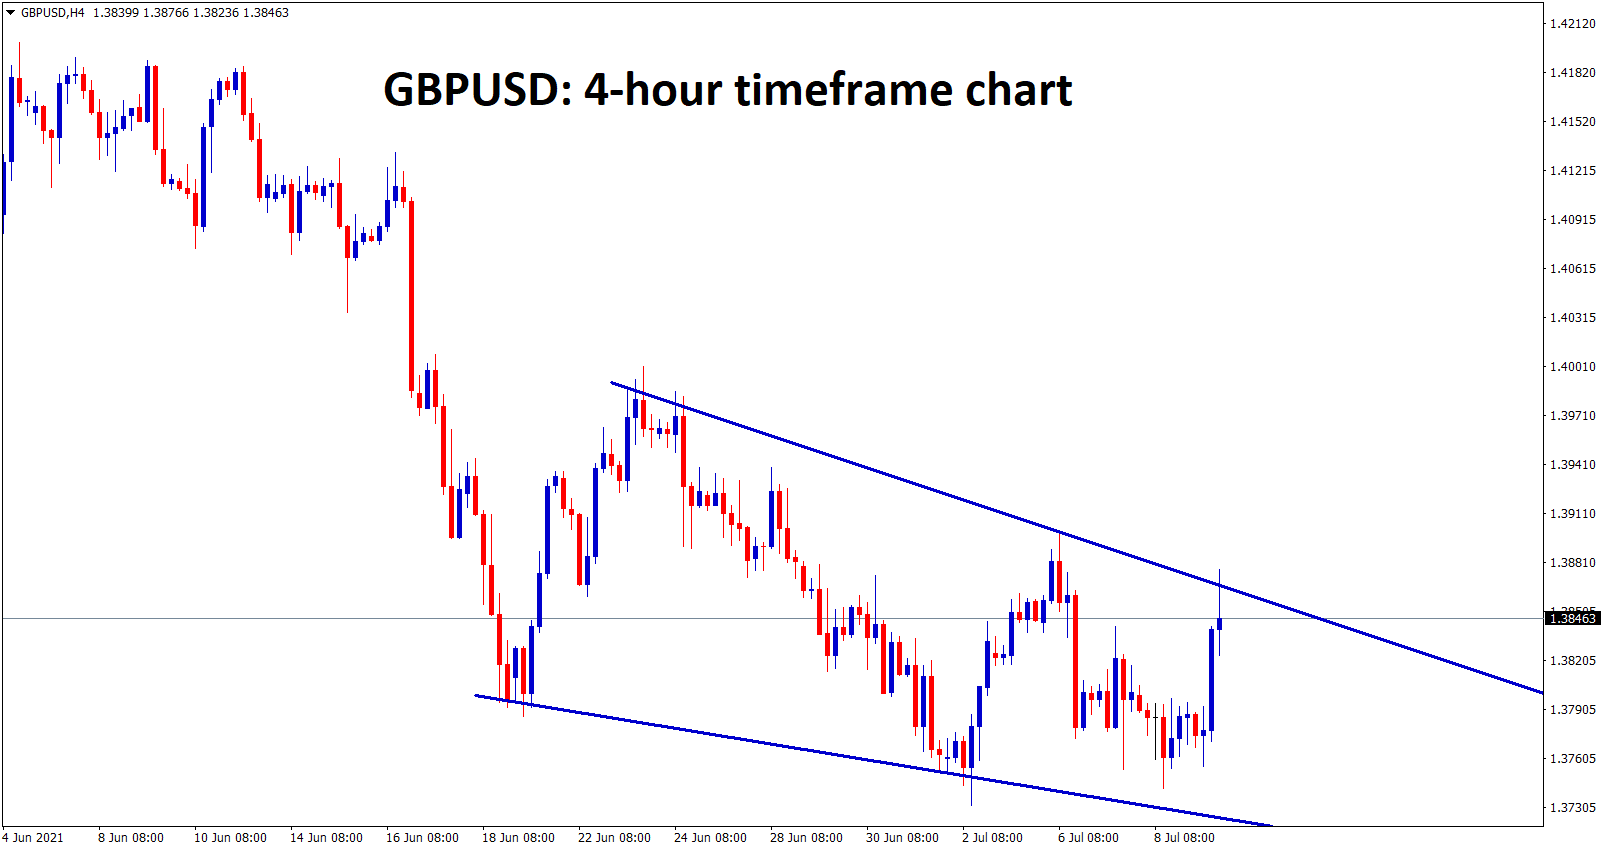 GBPUSD is moving downtrend forming a falling wedge